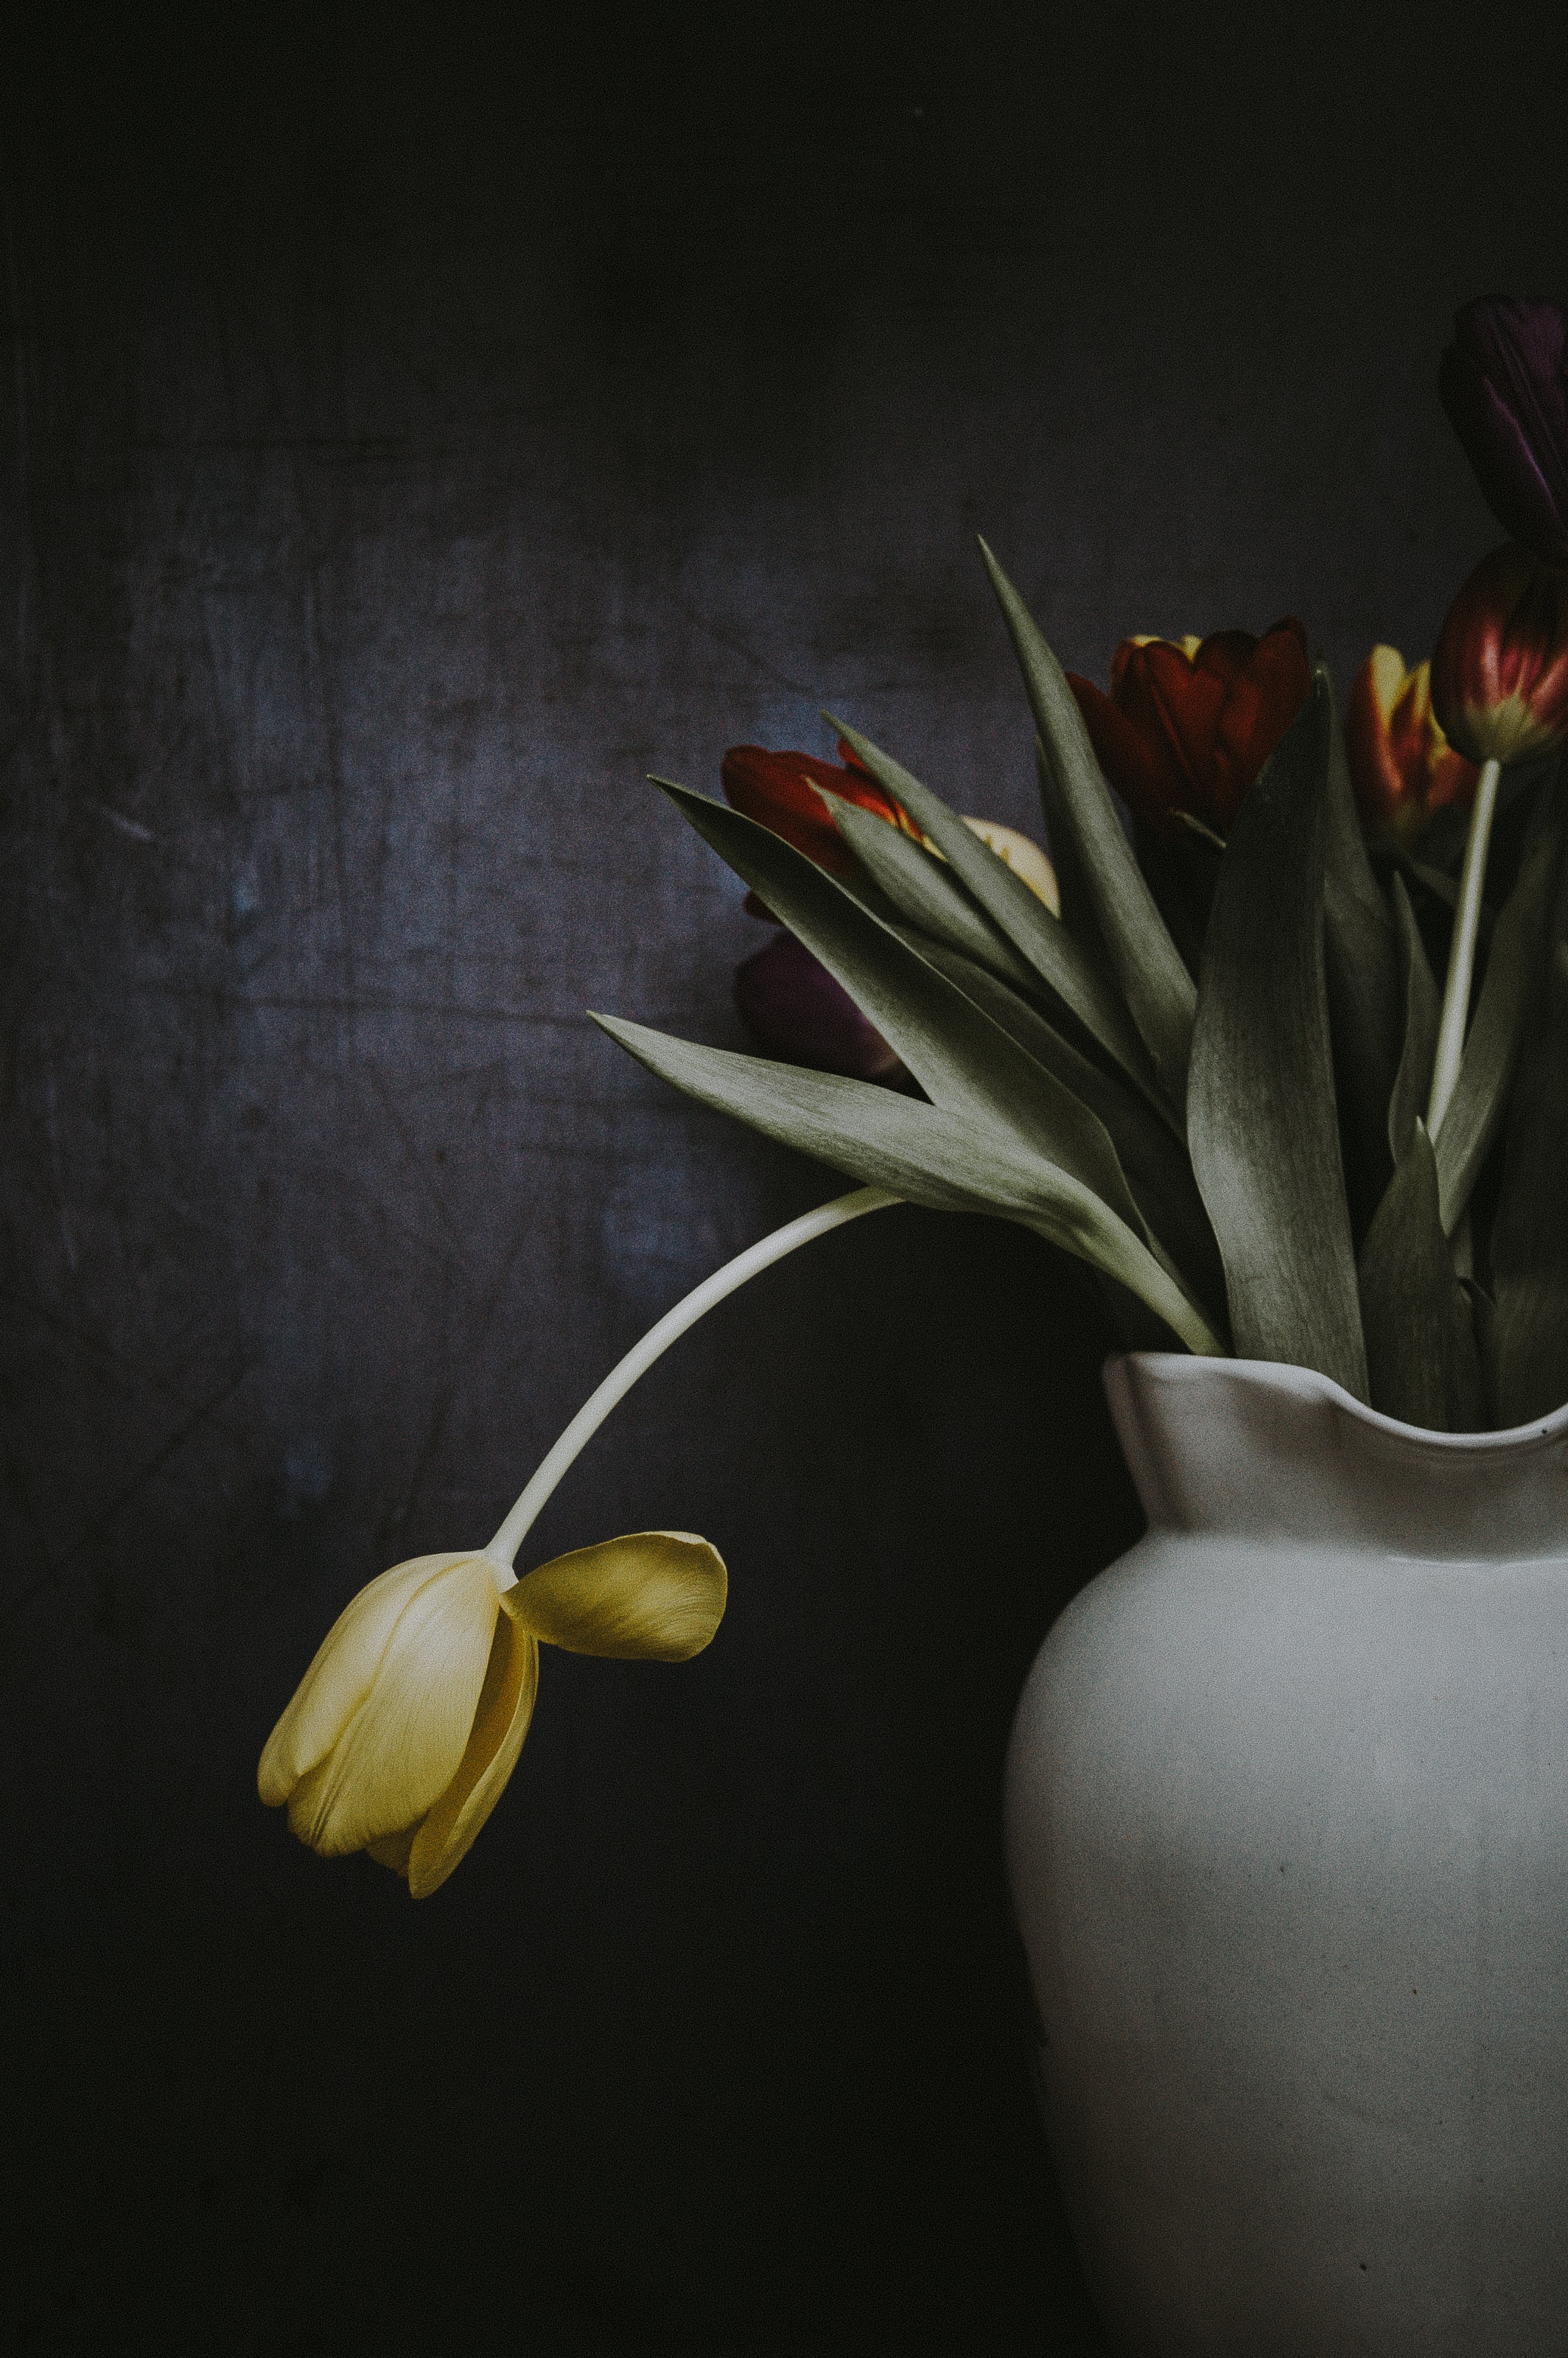 red and yellow tulips flowers on vase near wall